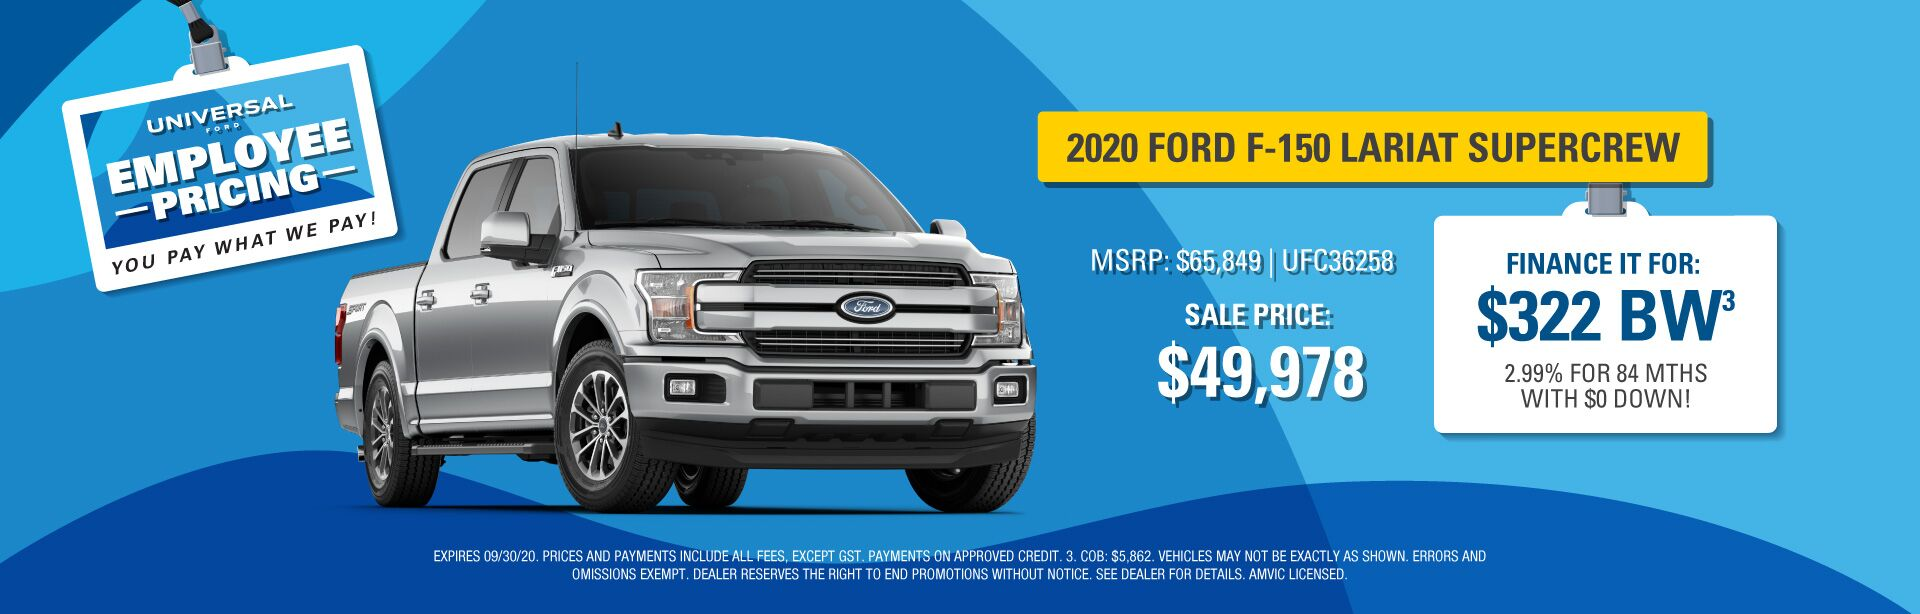 Employee Pricing - F-150 Lariat